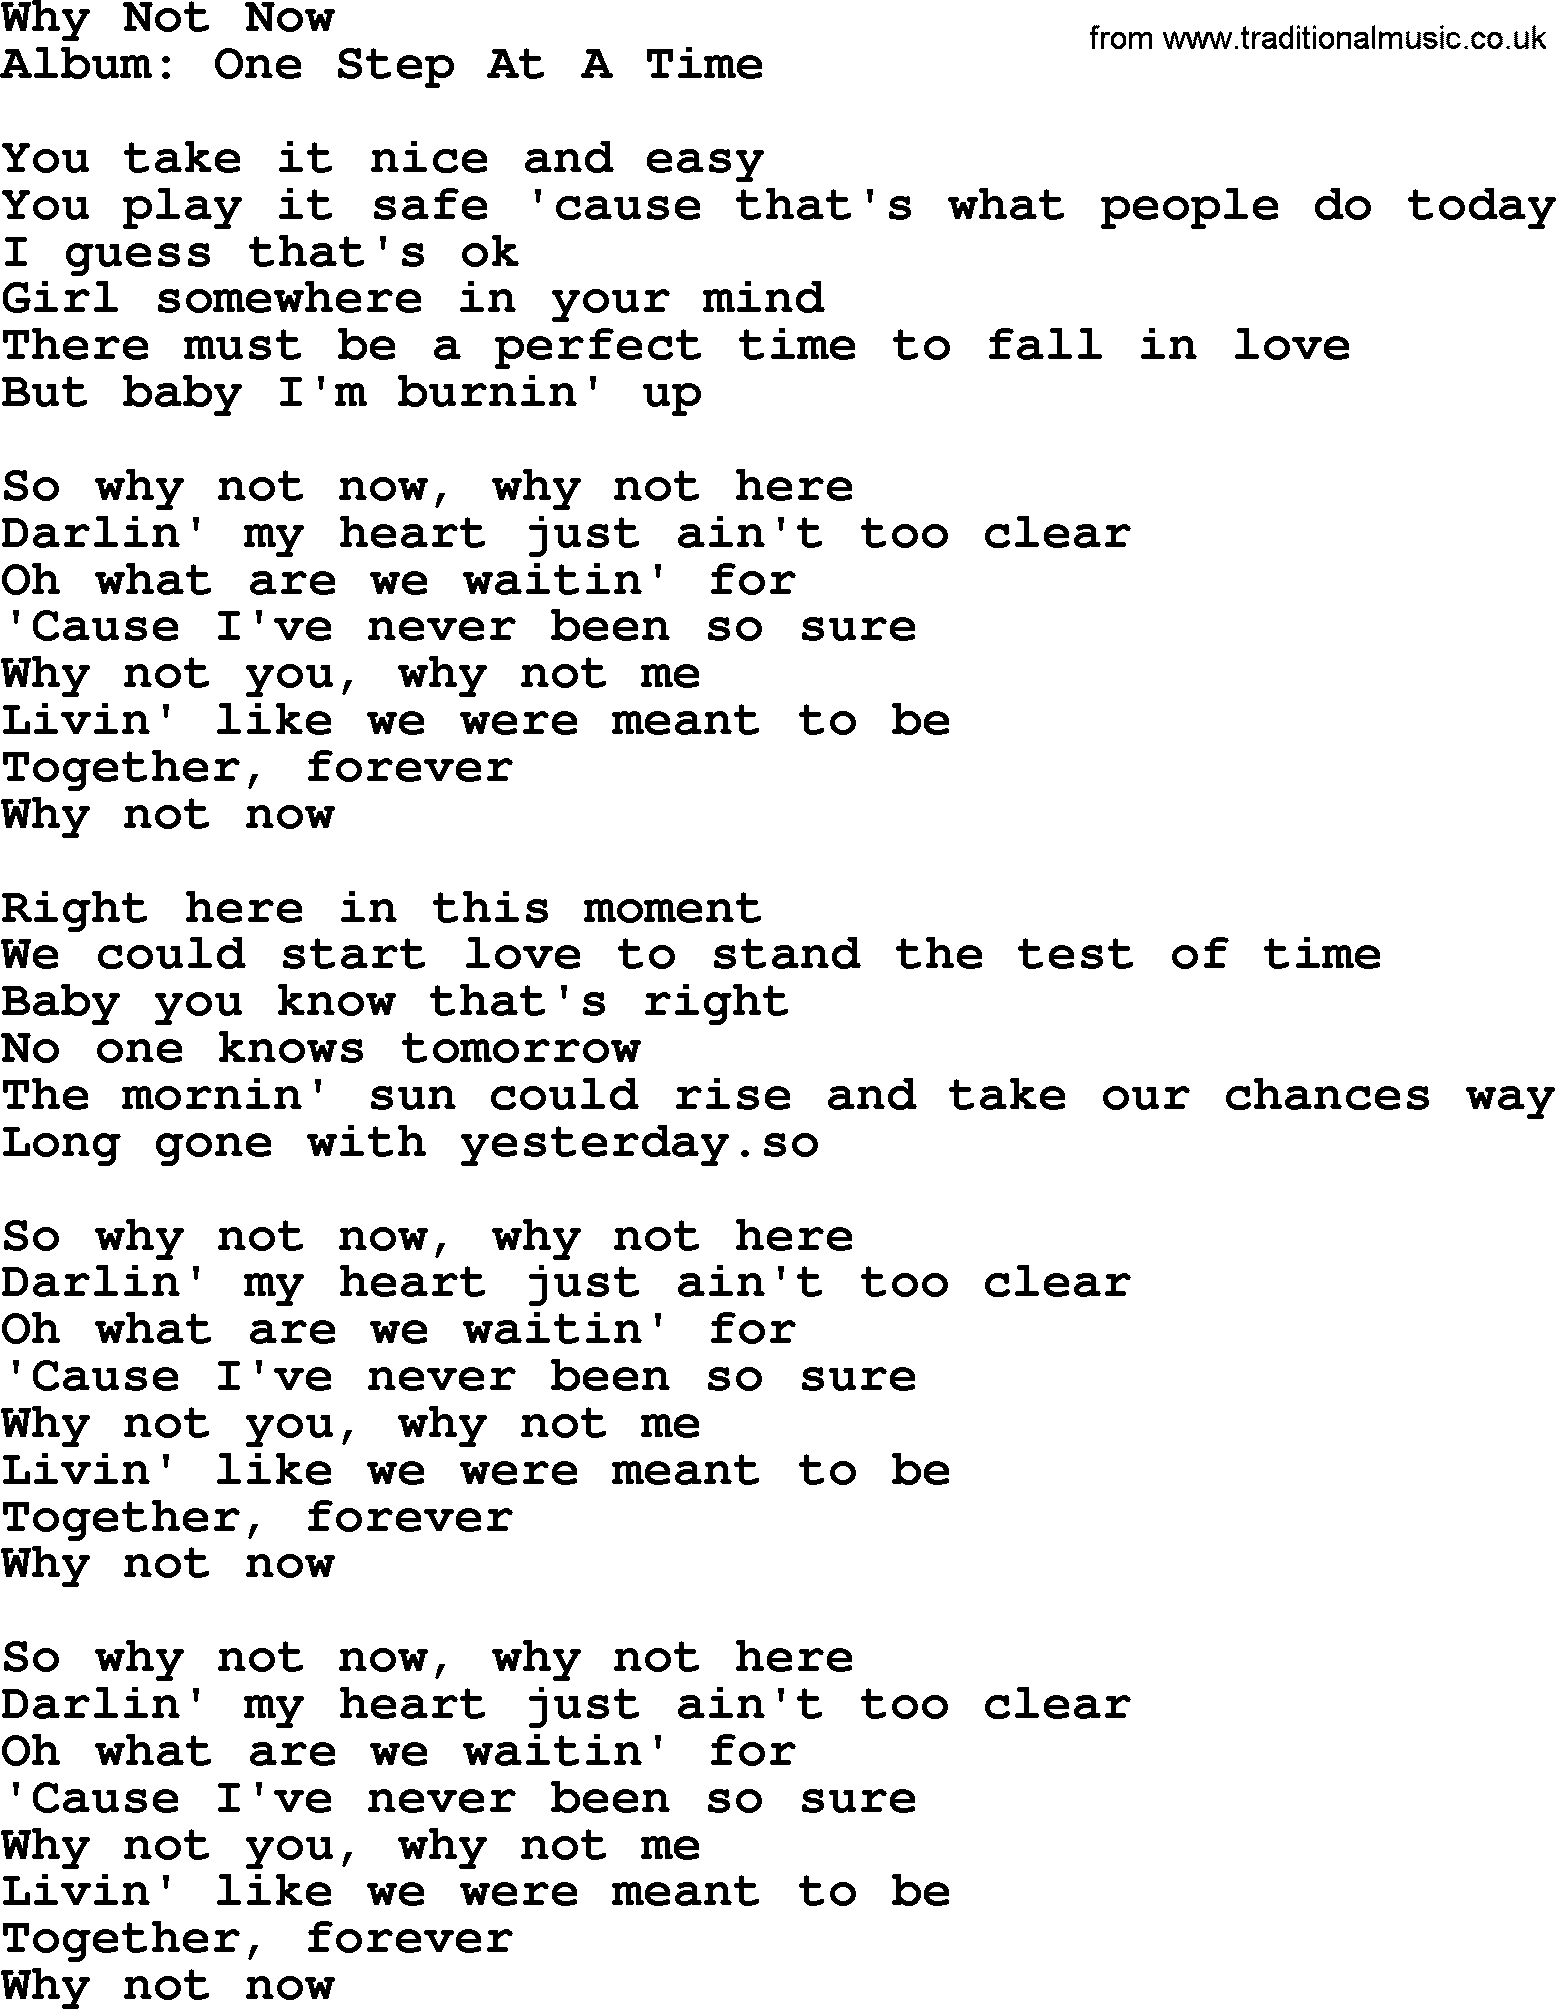 Why Not Now By George Strait Lyrics